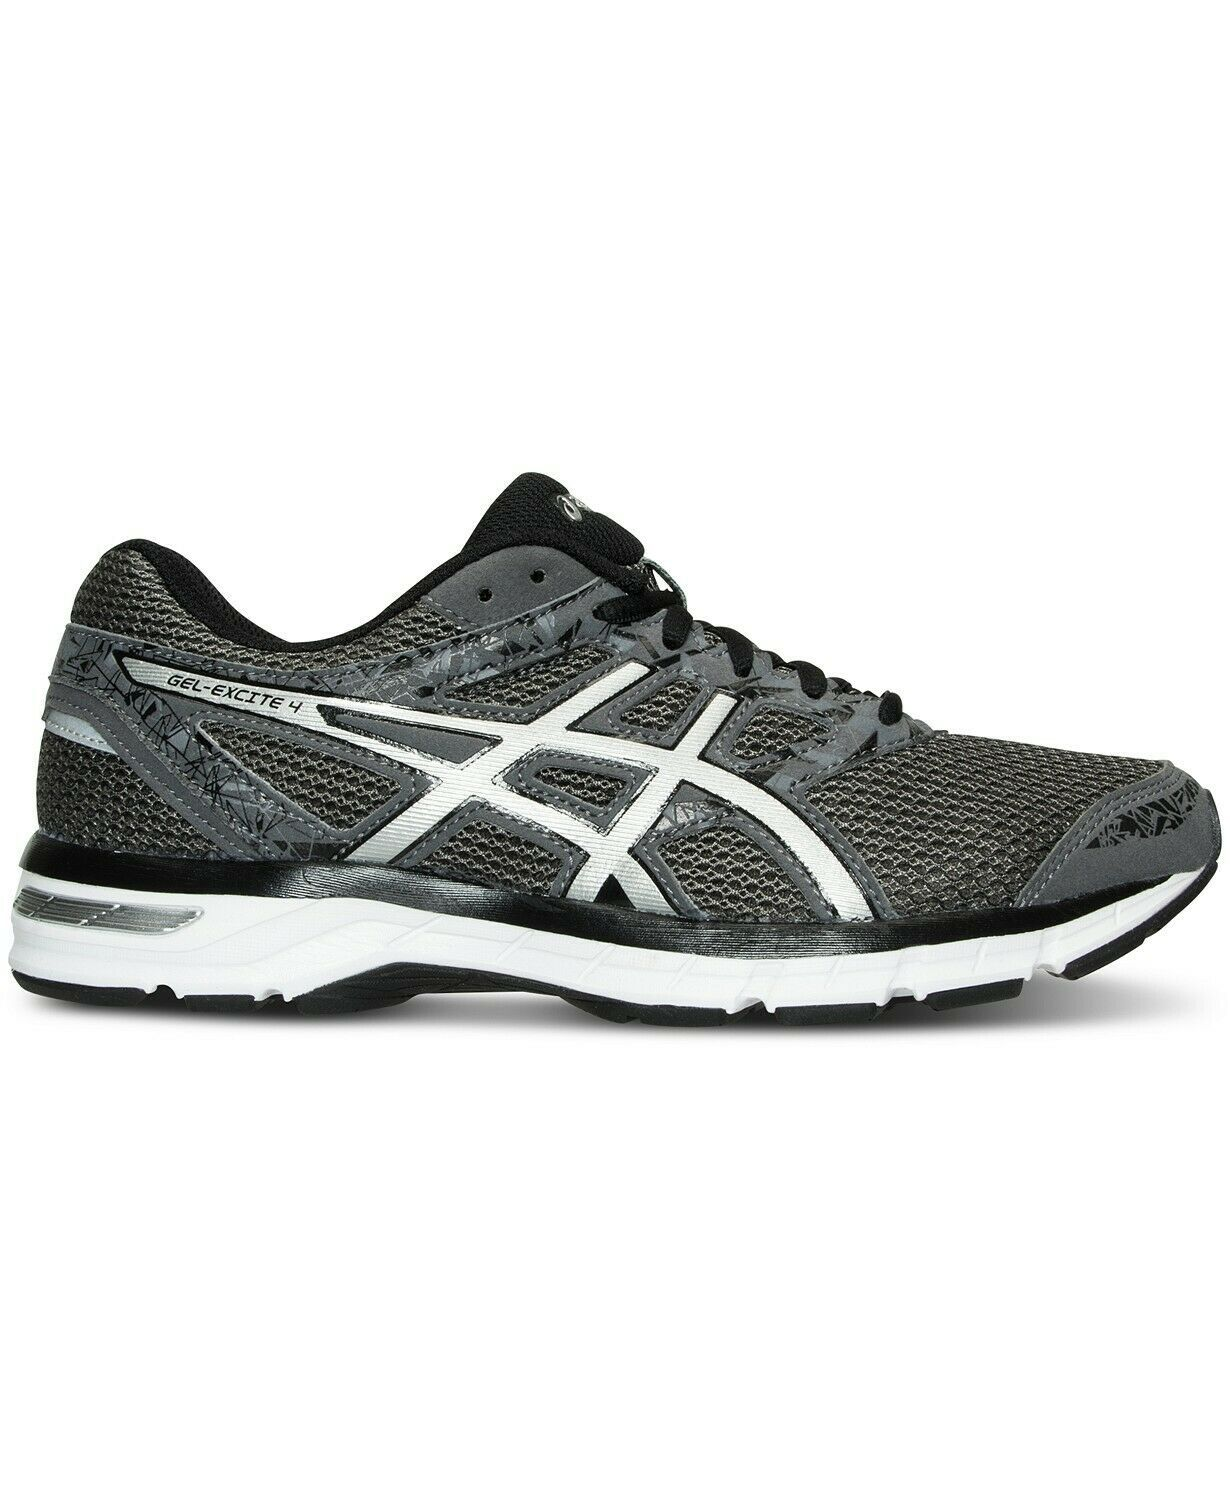 Asics Men's Excite 4 Running Sneakers from Finish Line image 2